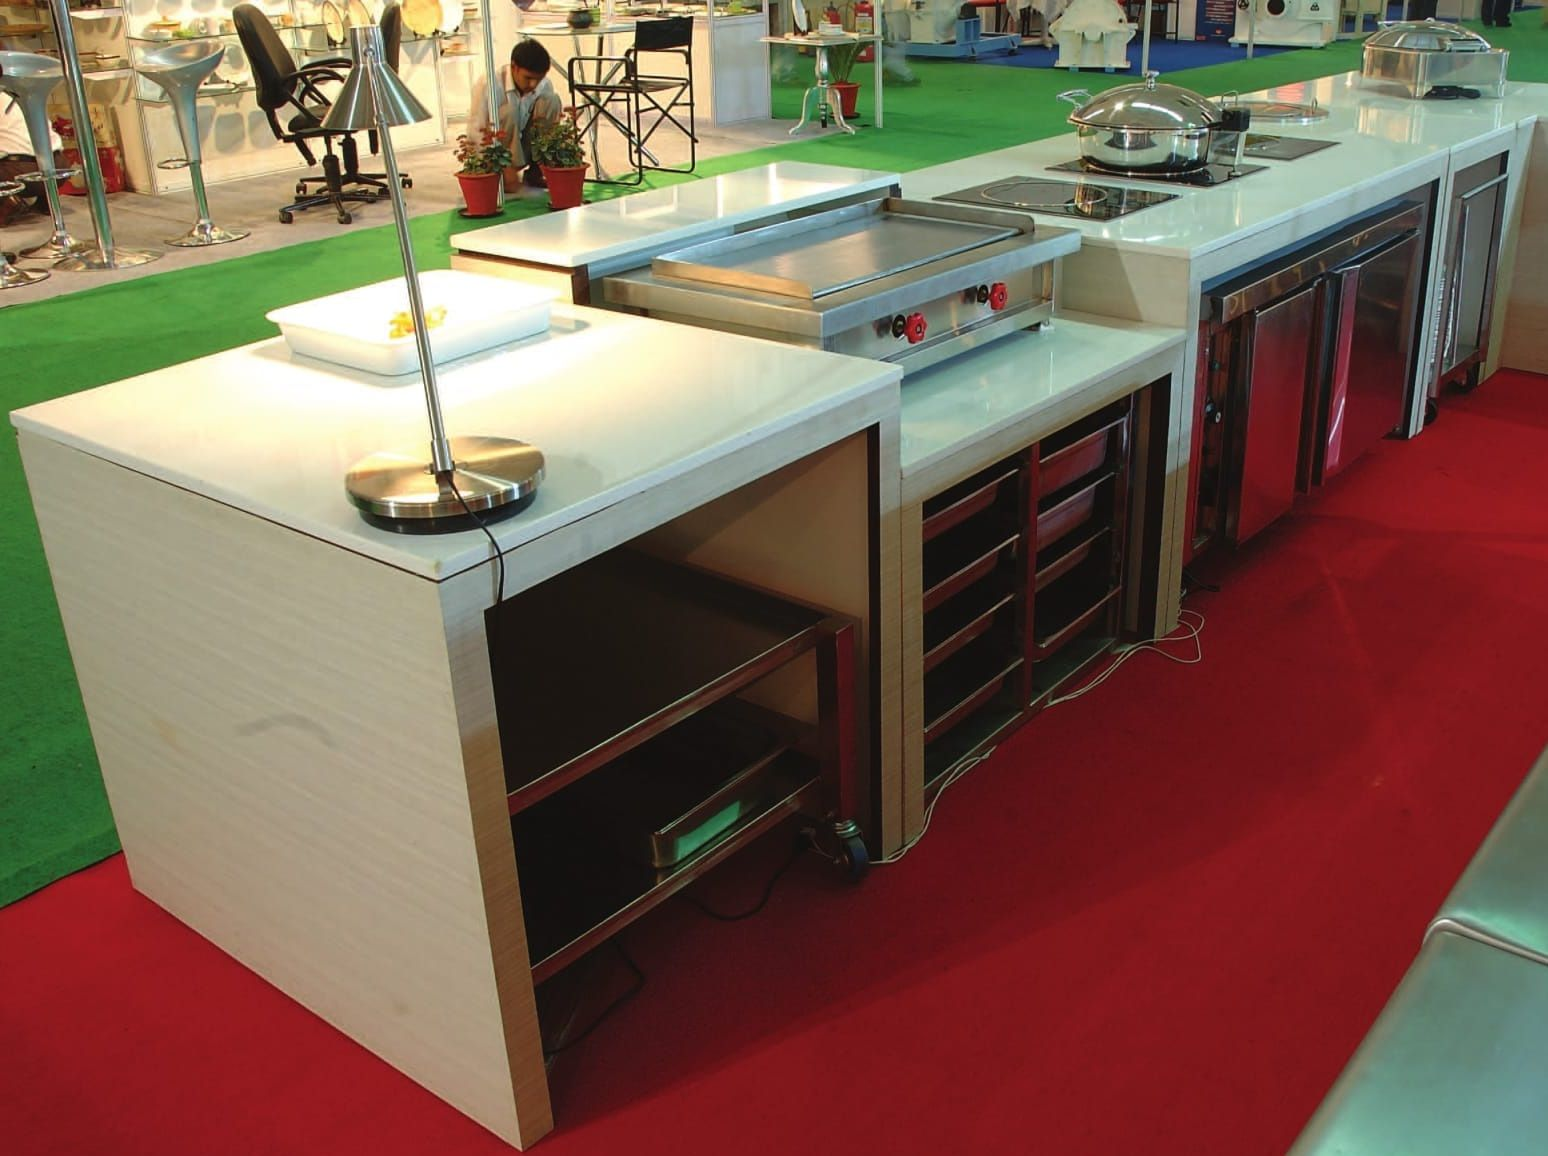 commercial kitchen equipment manufacturers in chennai air commercial kitchen equipment manufacturers in chennai air pollution control equipment manufacturers canteen hotel kitchen